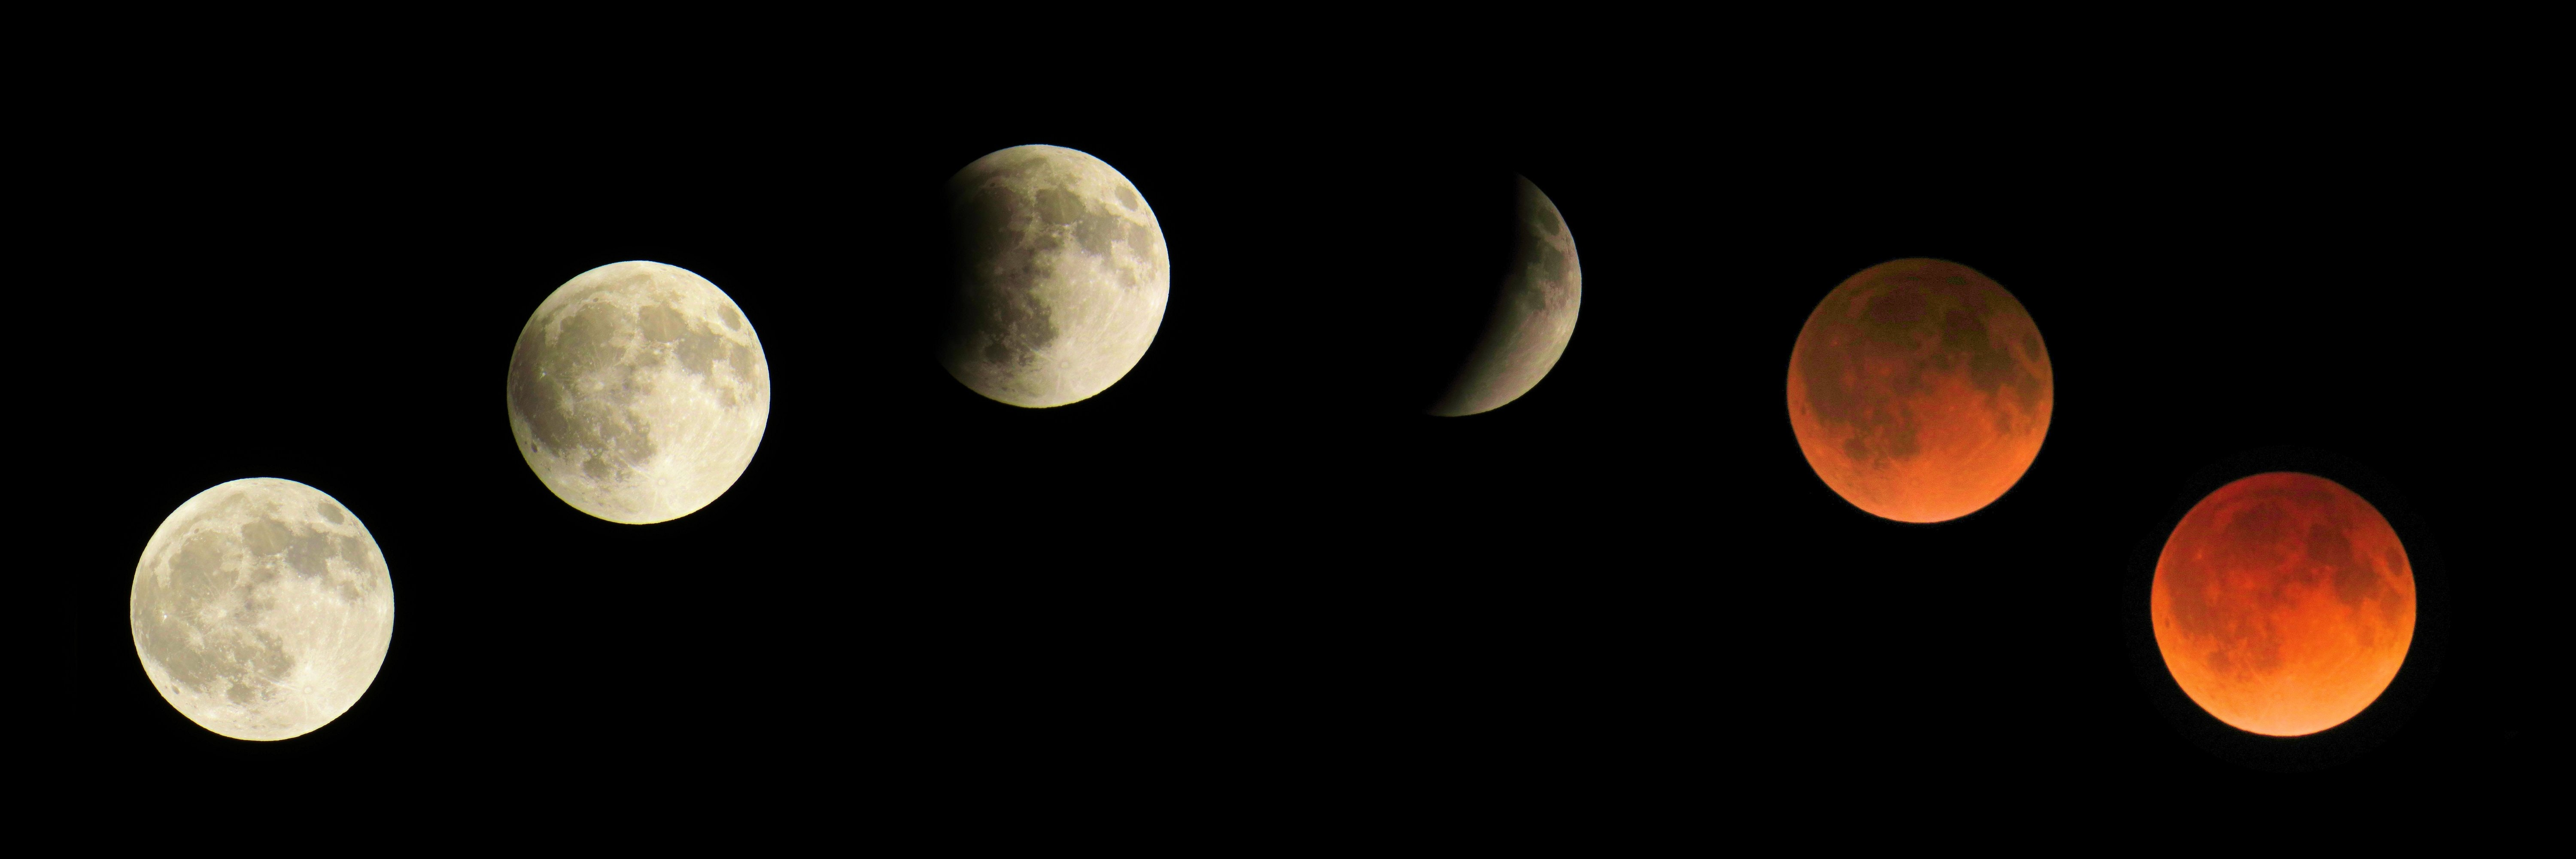 Free stock photo of blood moon, eclipse, full moon